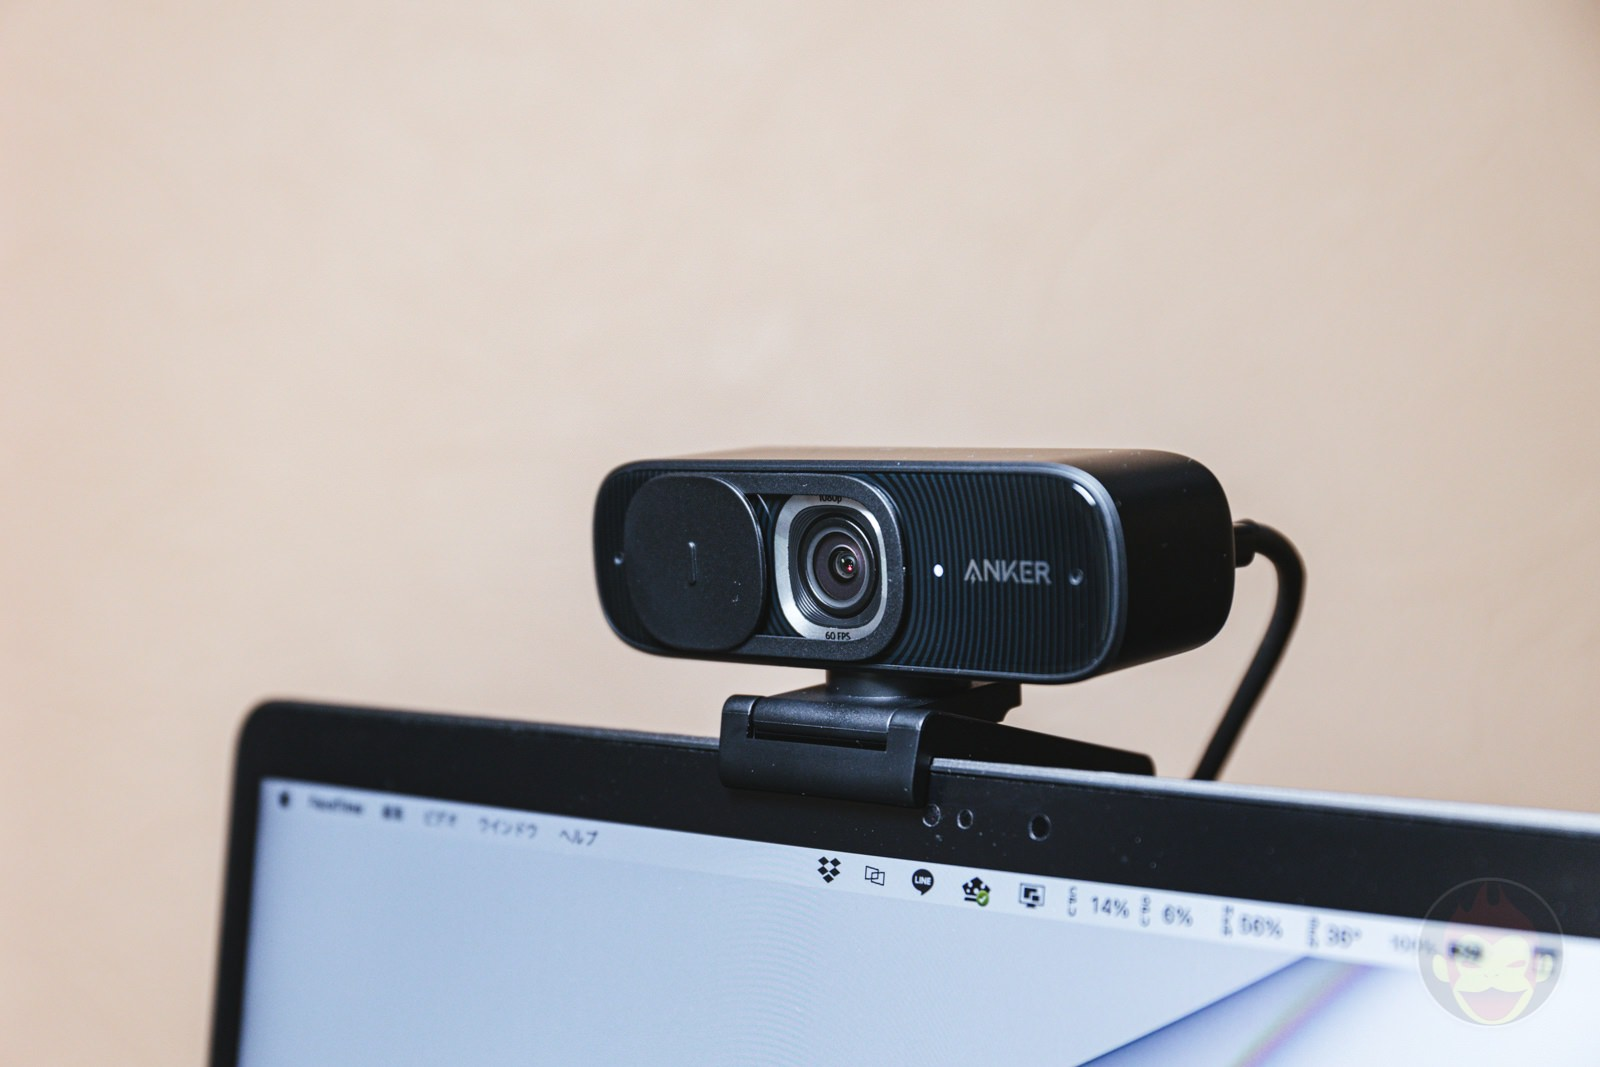 Anker PowerConf C300 Review 07